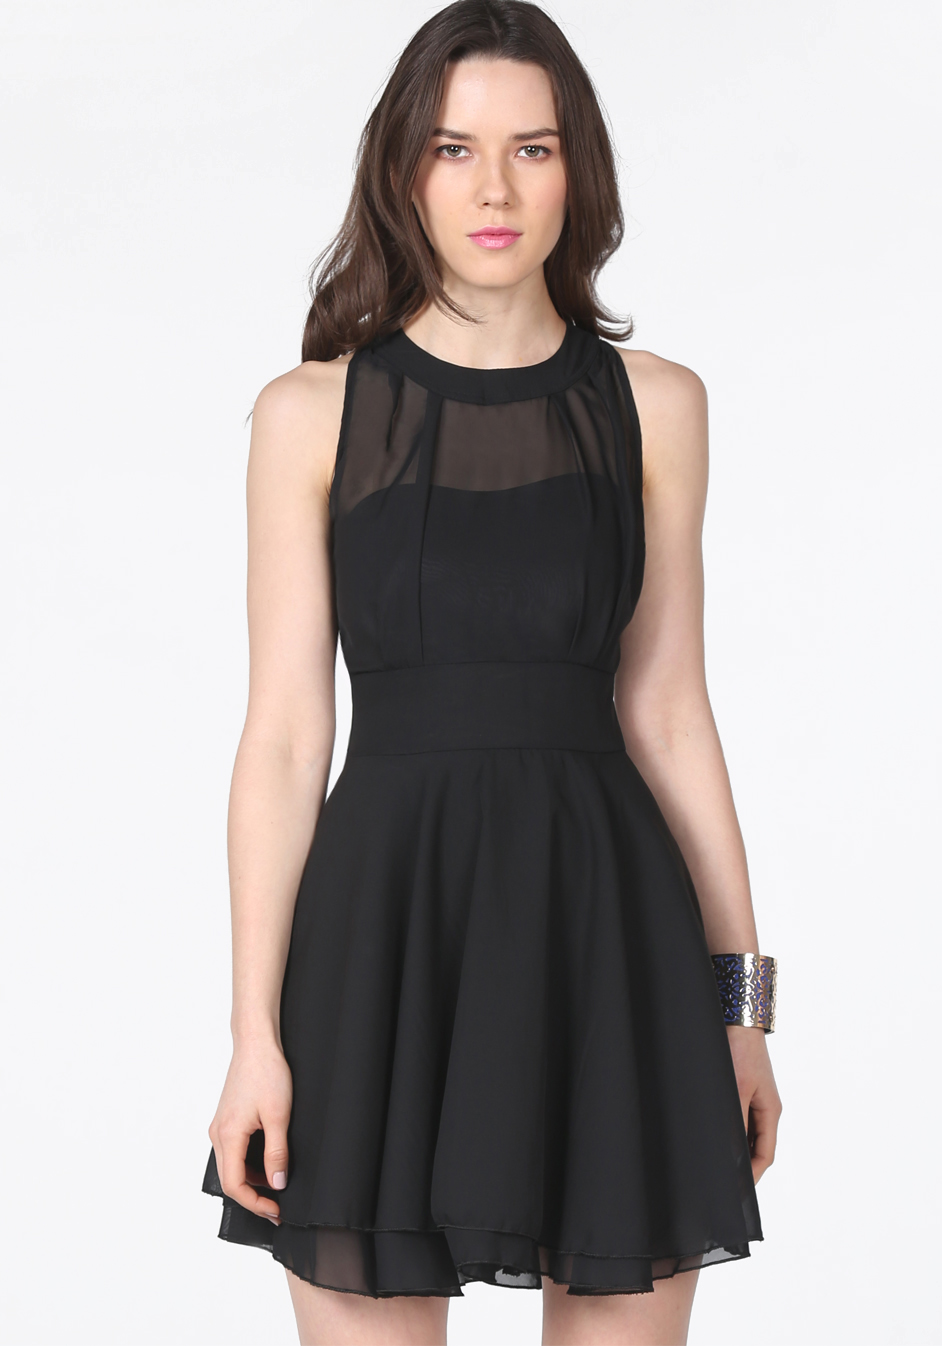 Black contrast mesh yoke backless pleated dress